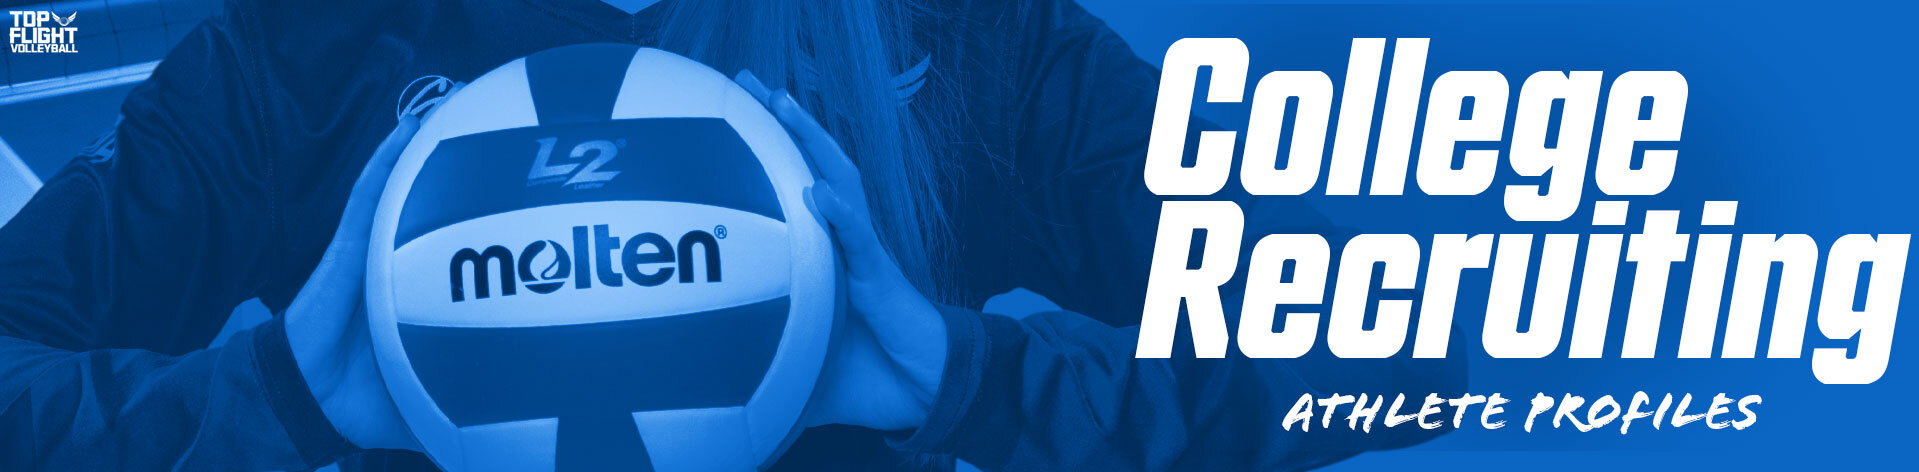 top-flight-volleyball-college-recruiting-page-header-2023